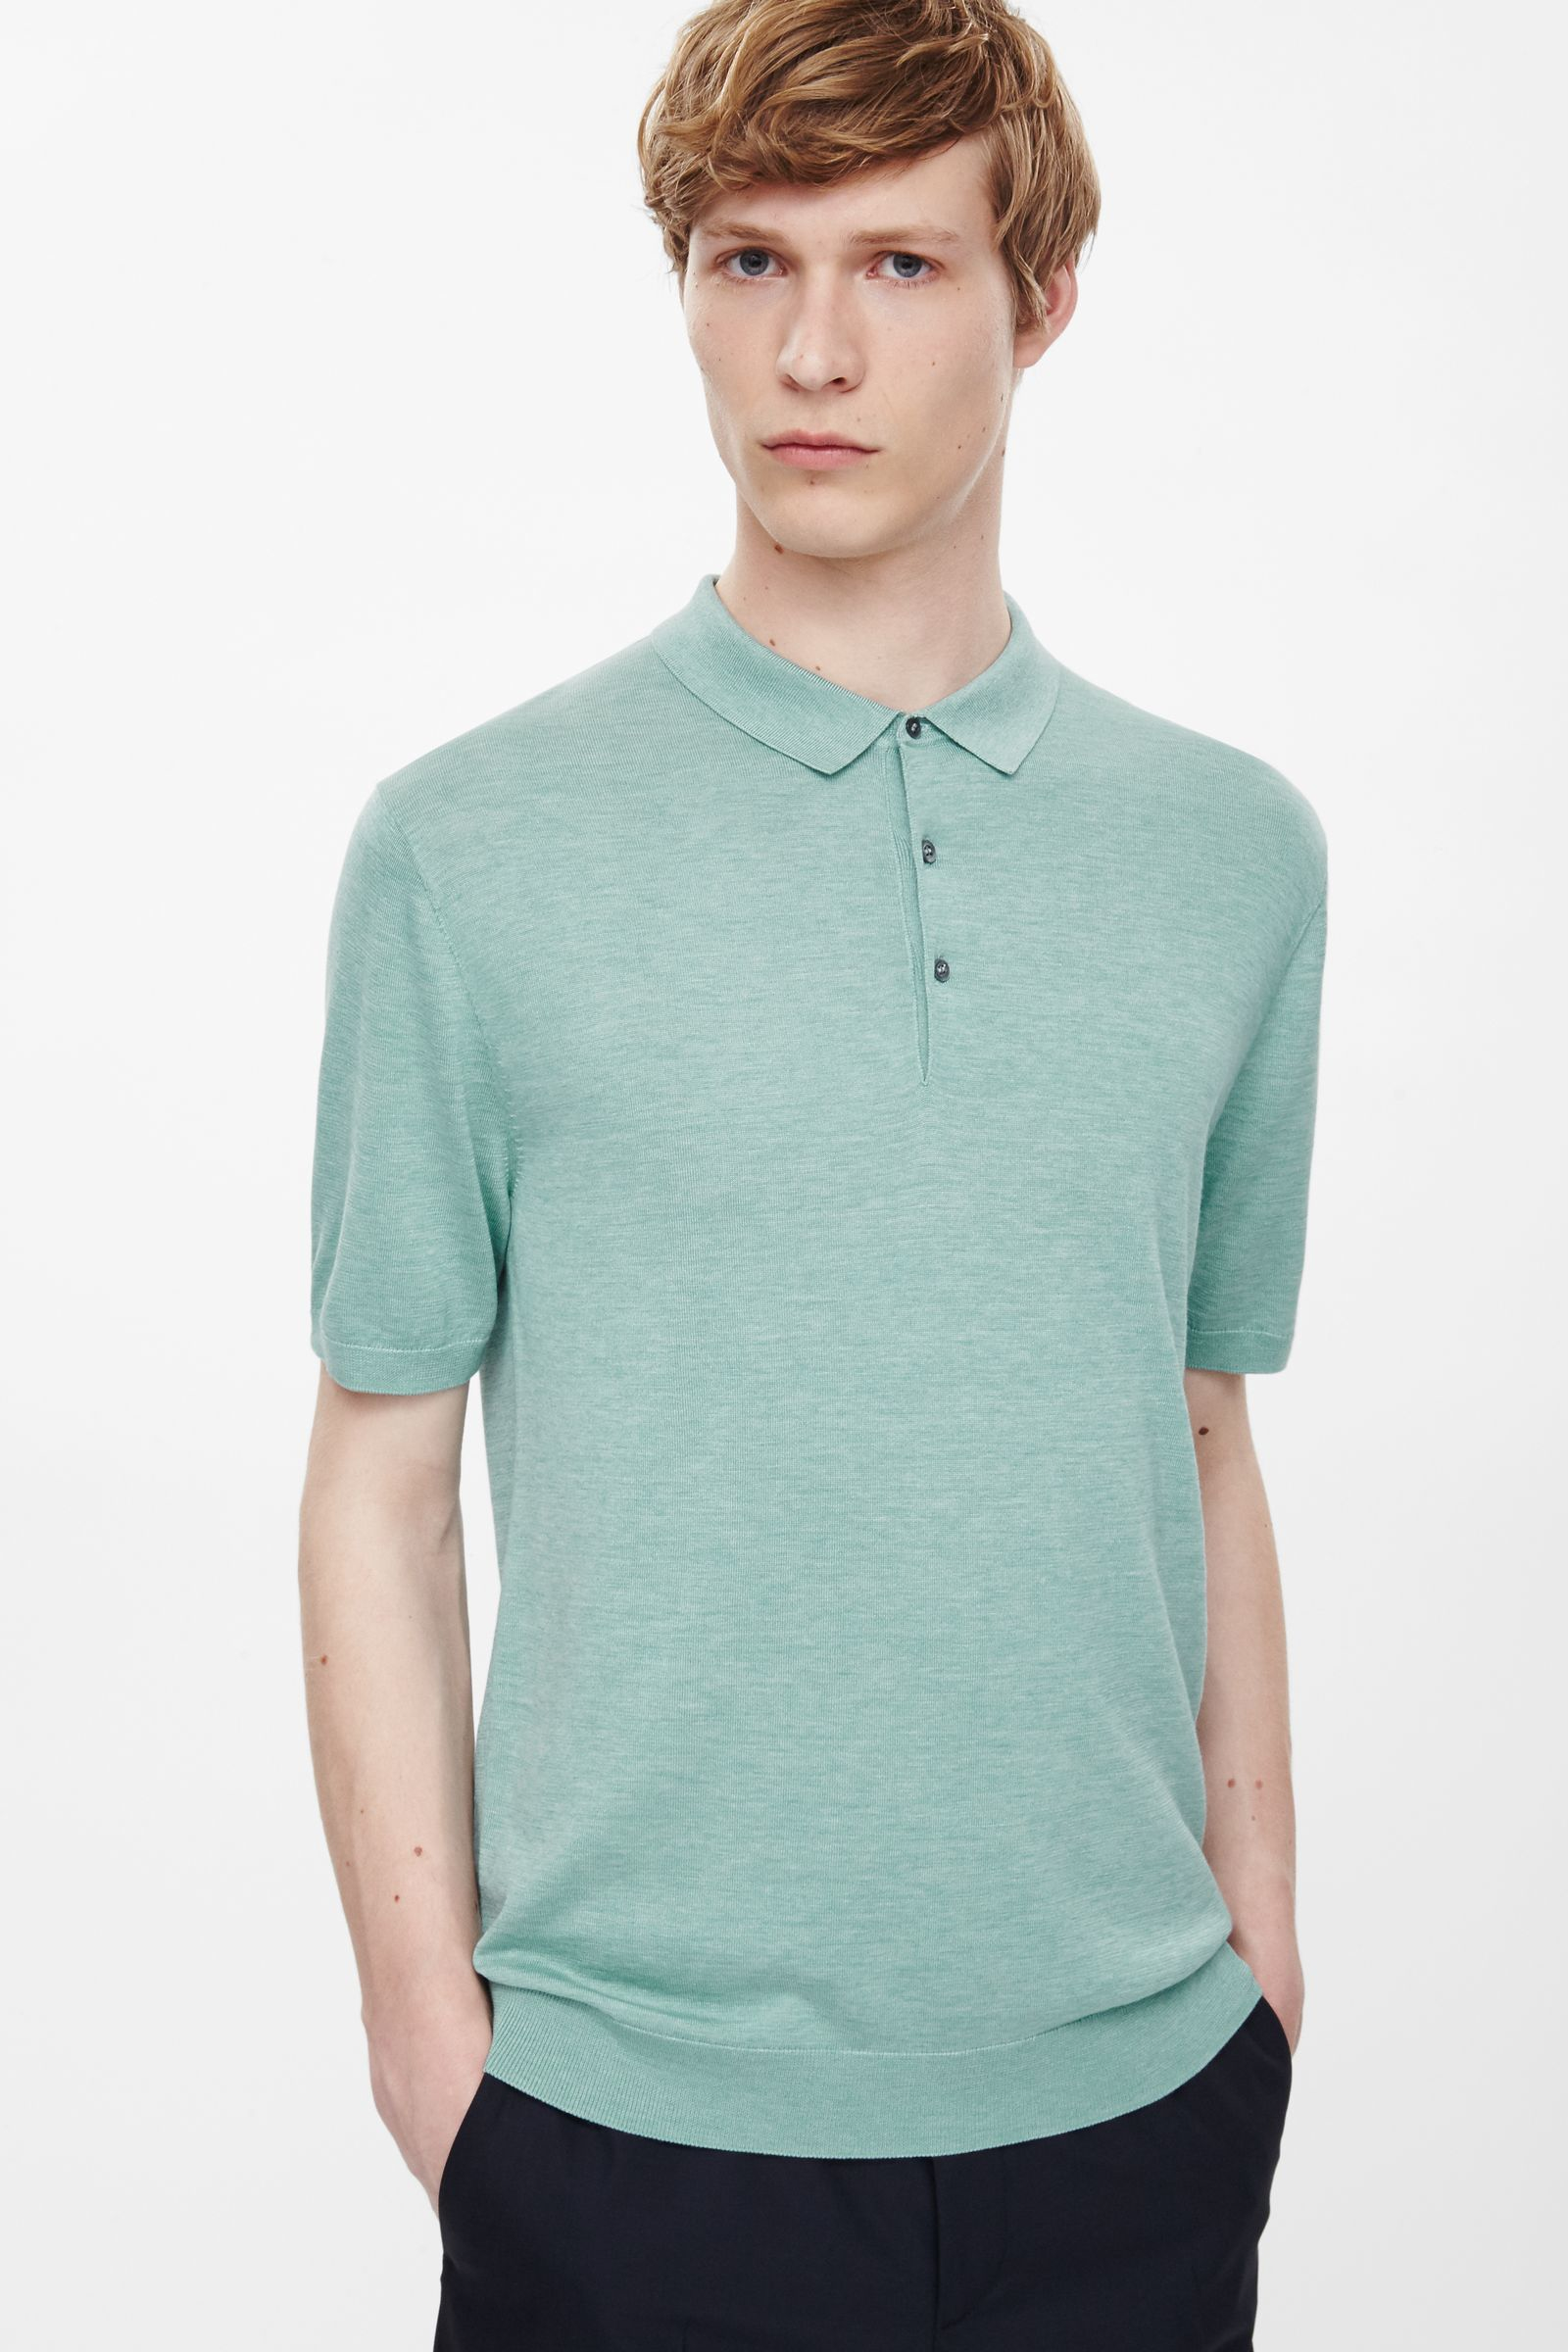 Cos Silk Cotton Polo Shirt In Green For Men Mint Green